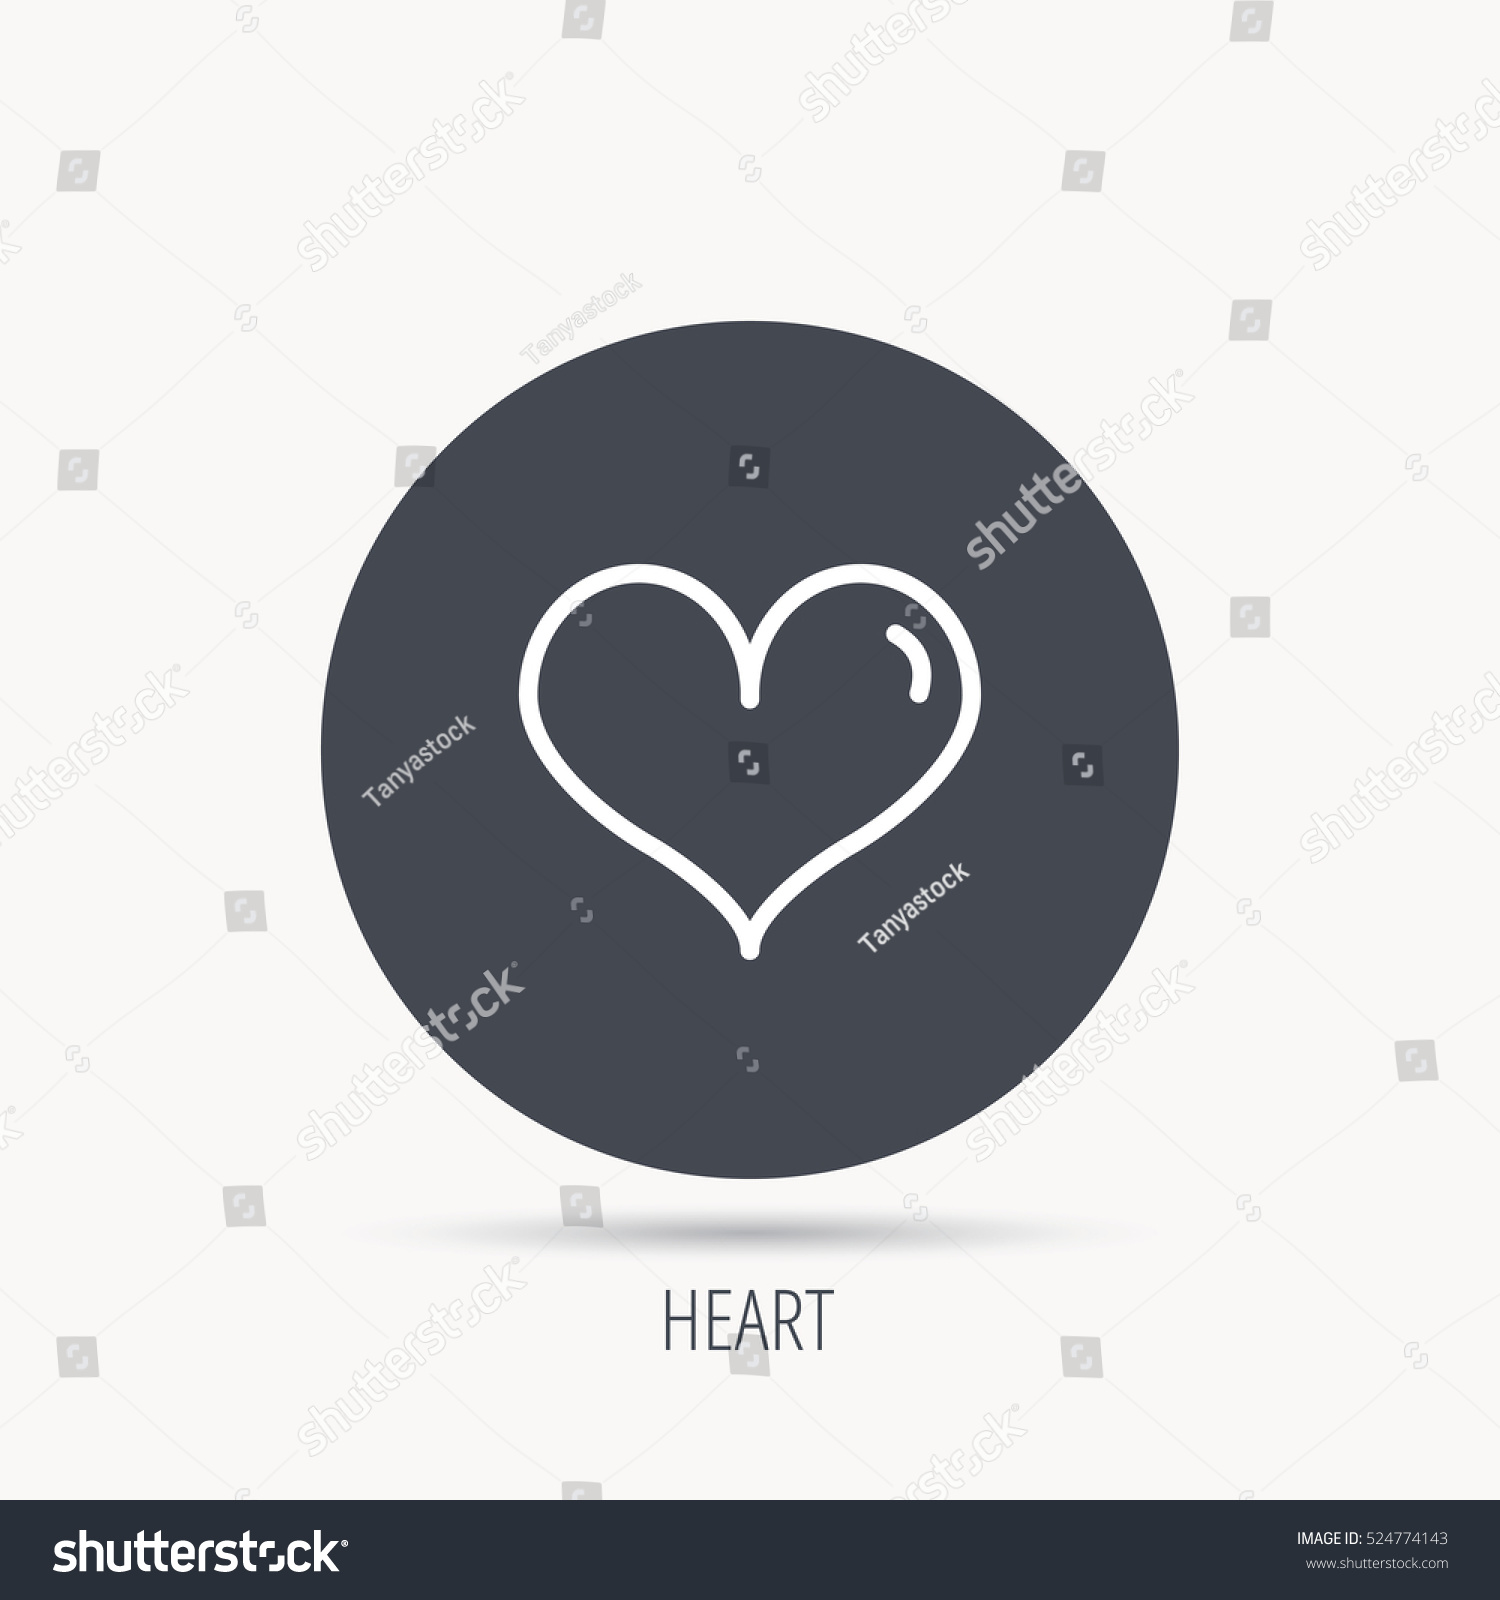 Heart Icon Love Sign Life Symbol Stock Vector 524774143 Shutterstock